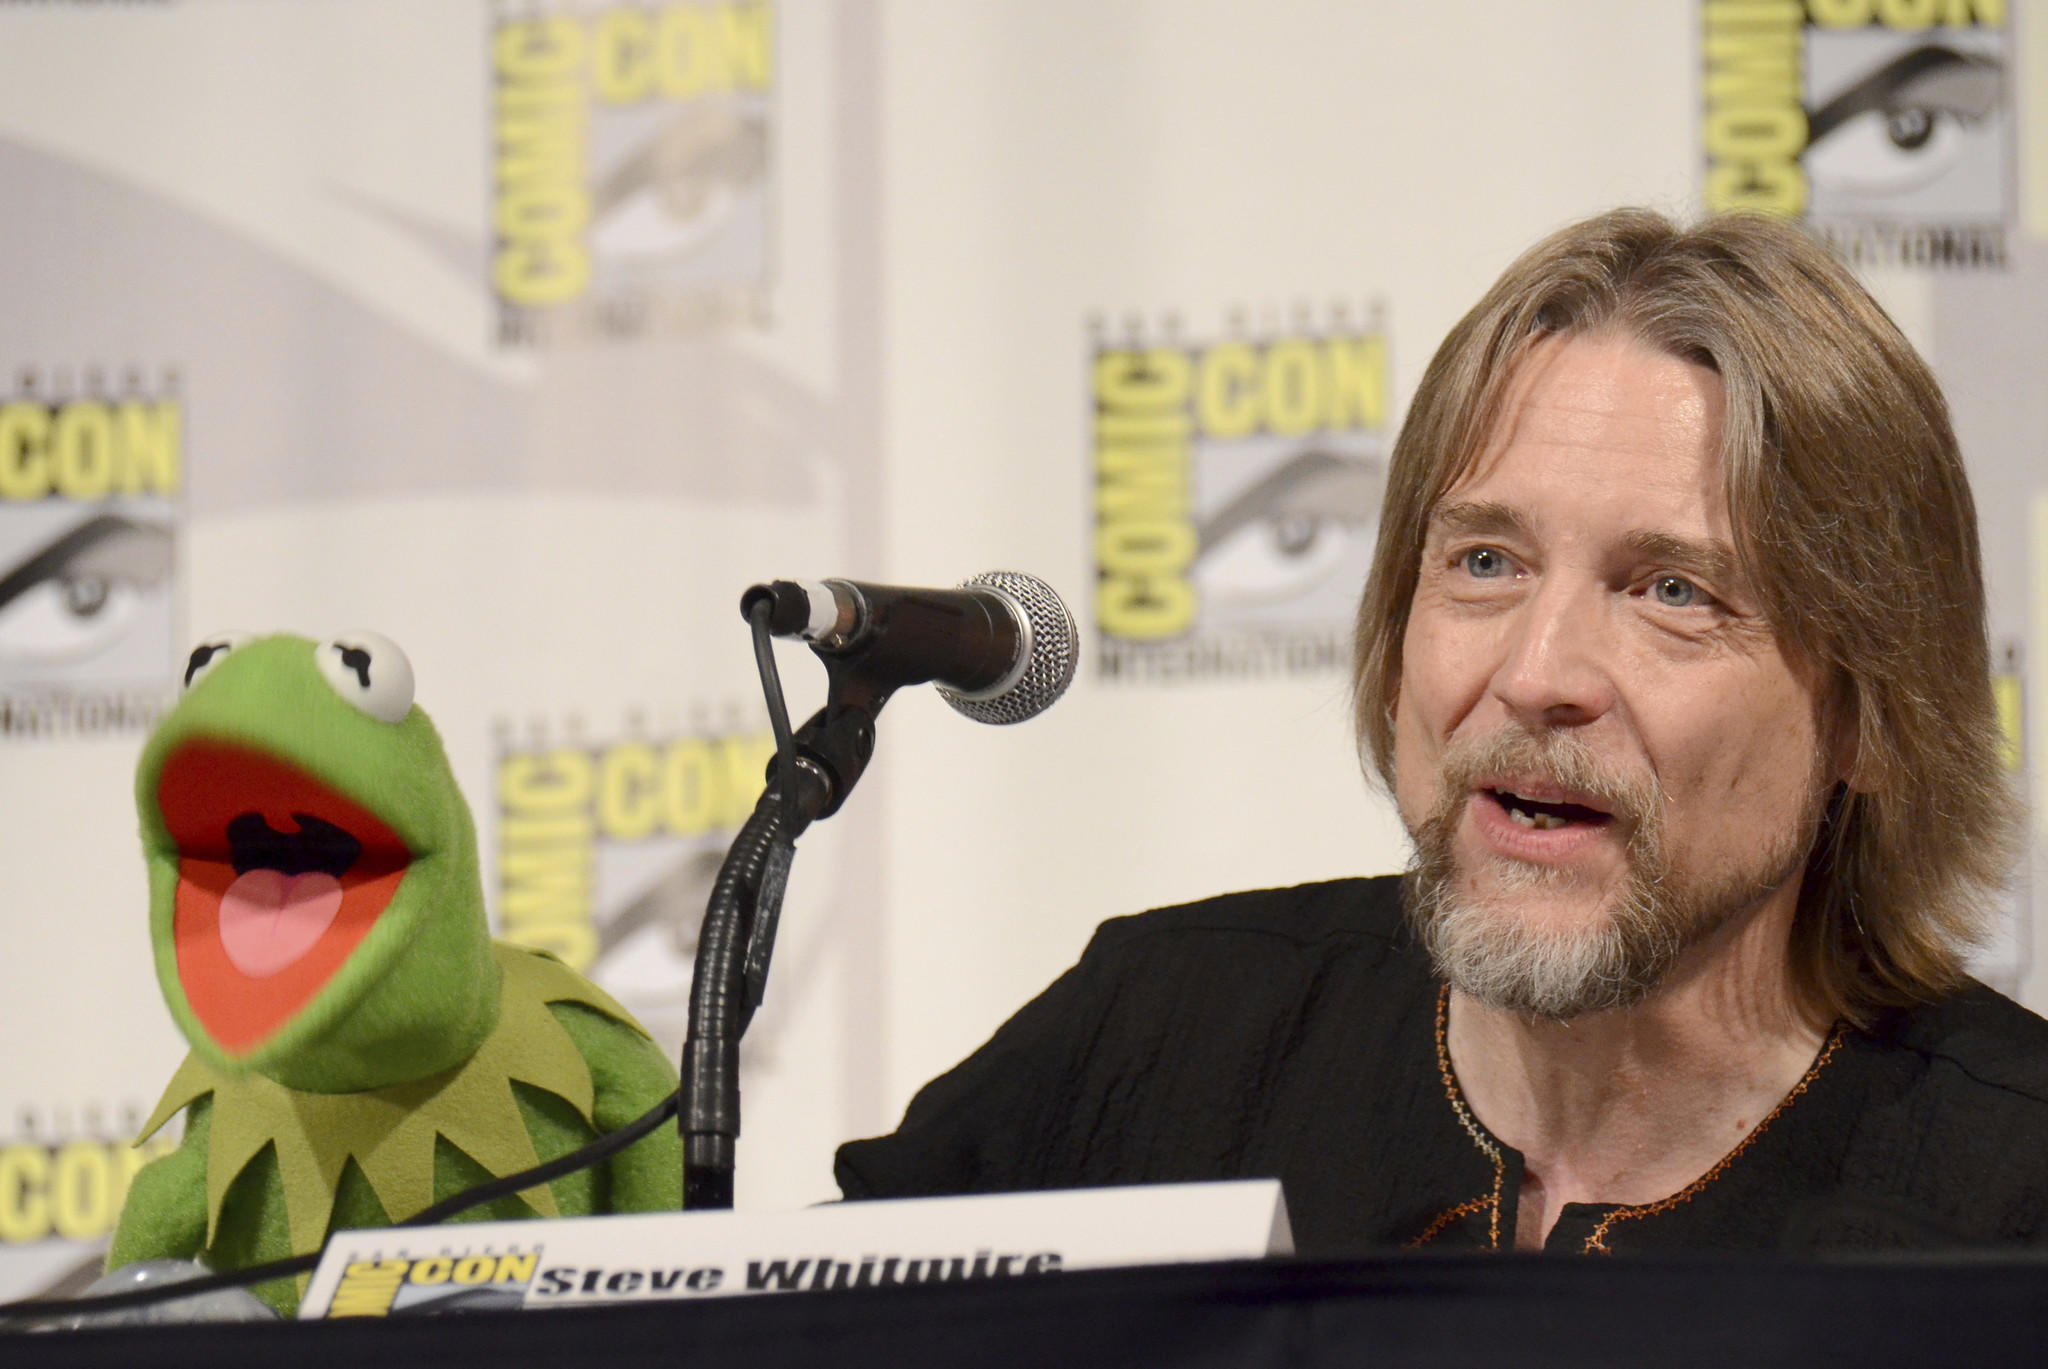 Steve Whitmire appears with Kermit the Frog at the 2015 San Diego Comic-Con. (Tonya Wise / Invision/Associated Press)